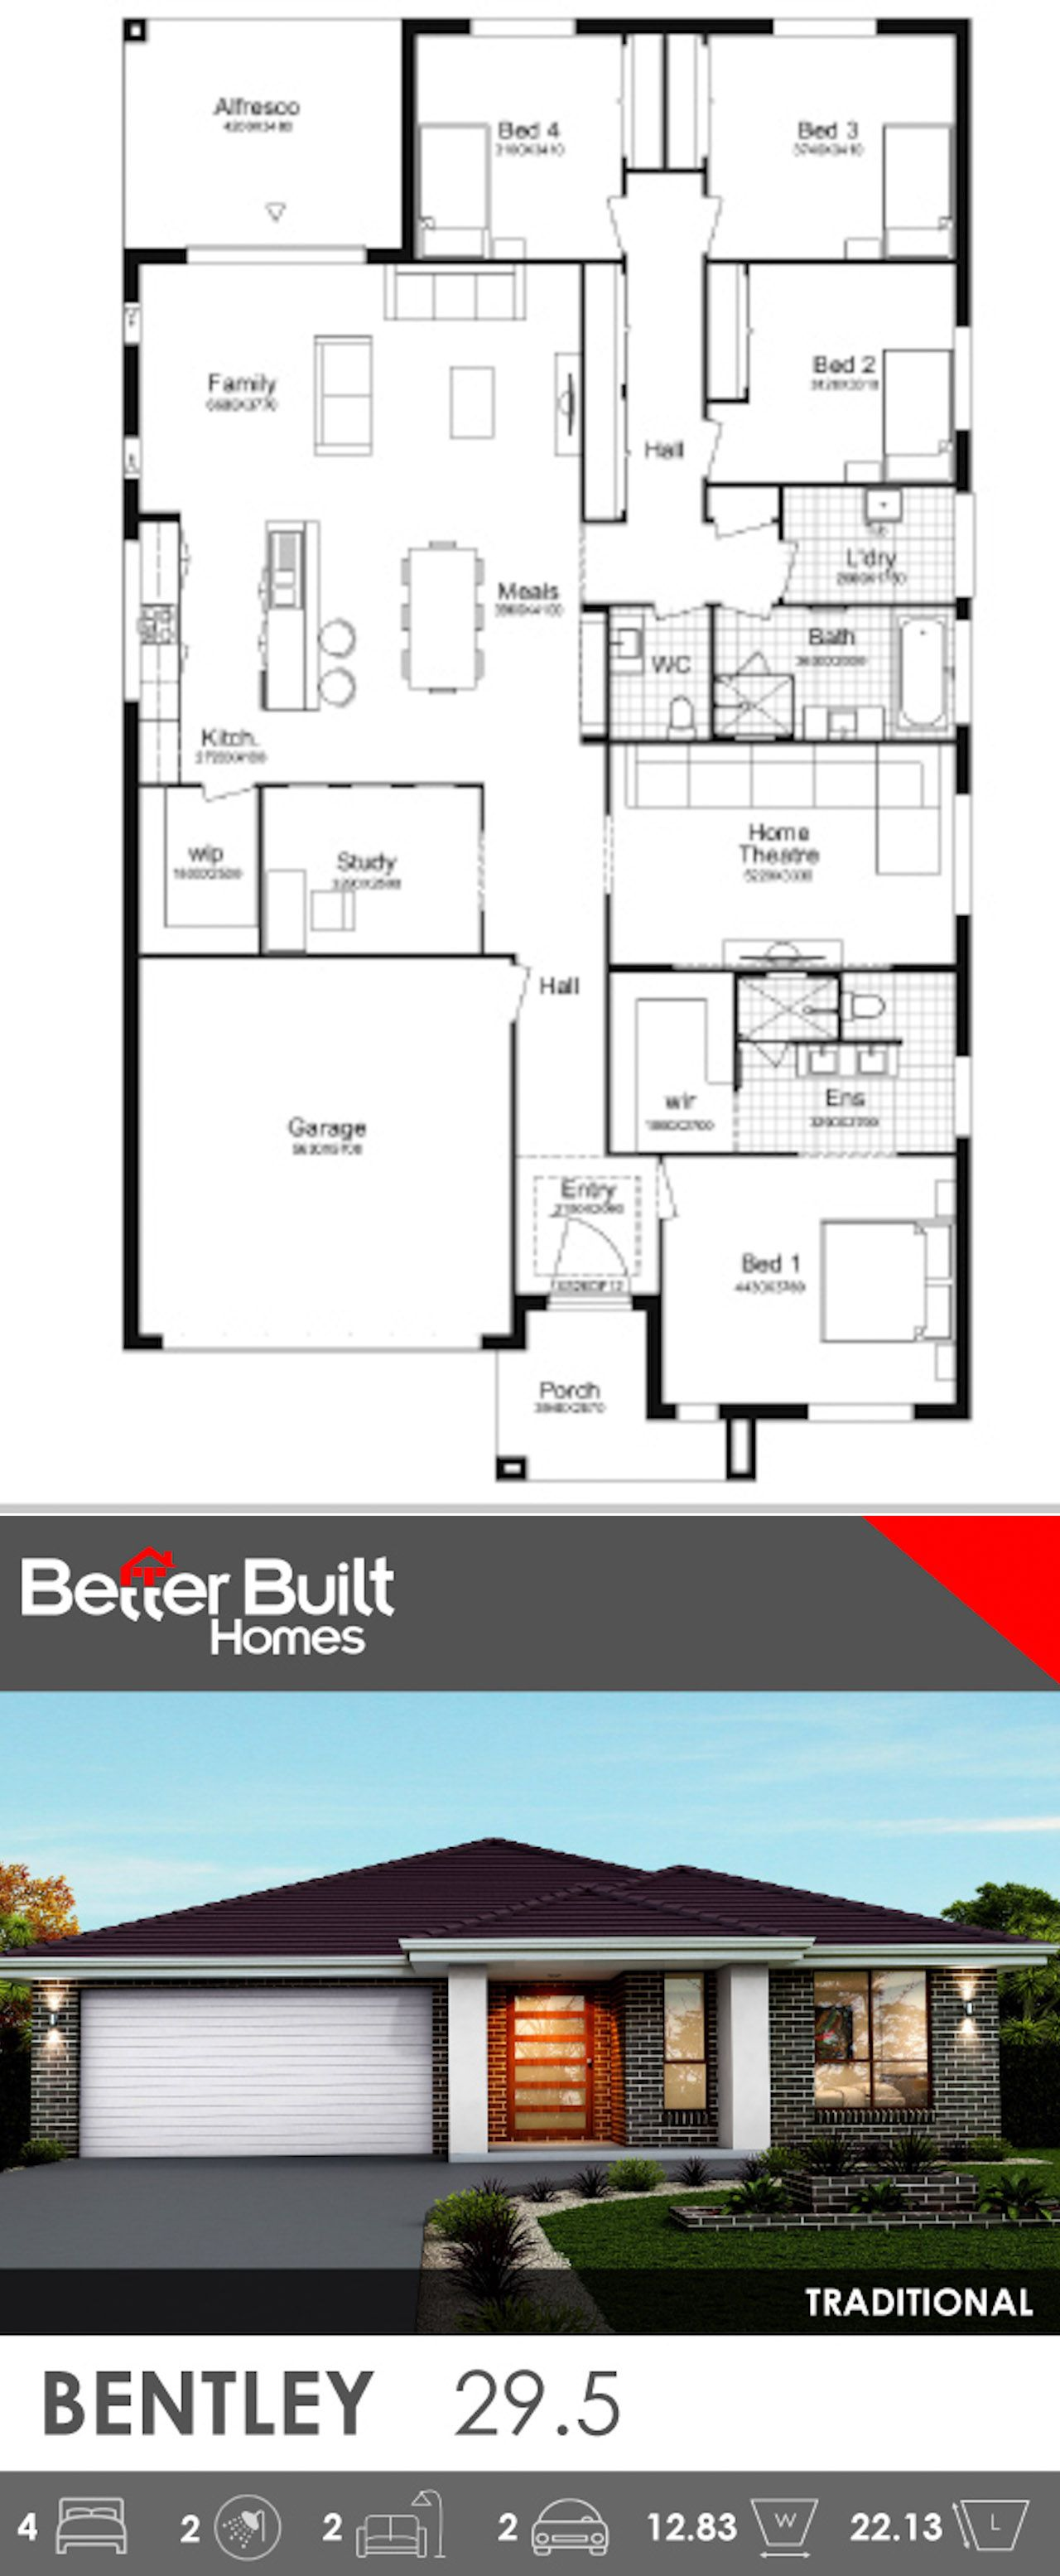 Single Storey House Design The Bentley 29 With Traditional Facade This Generous Layout Includes Everything A Home Facade House House Blueprints House Plans